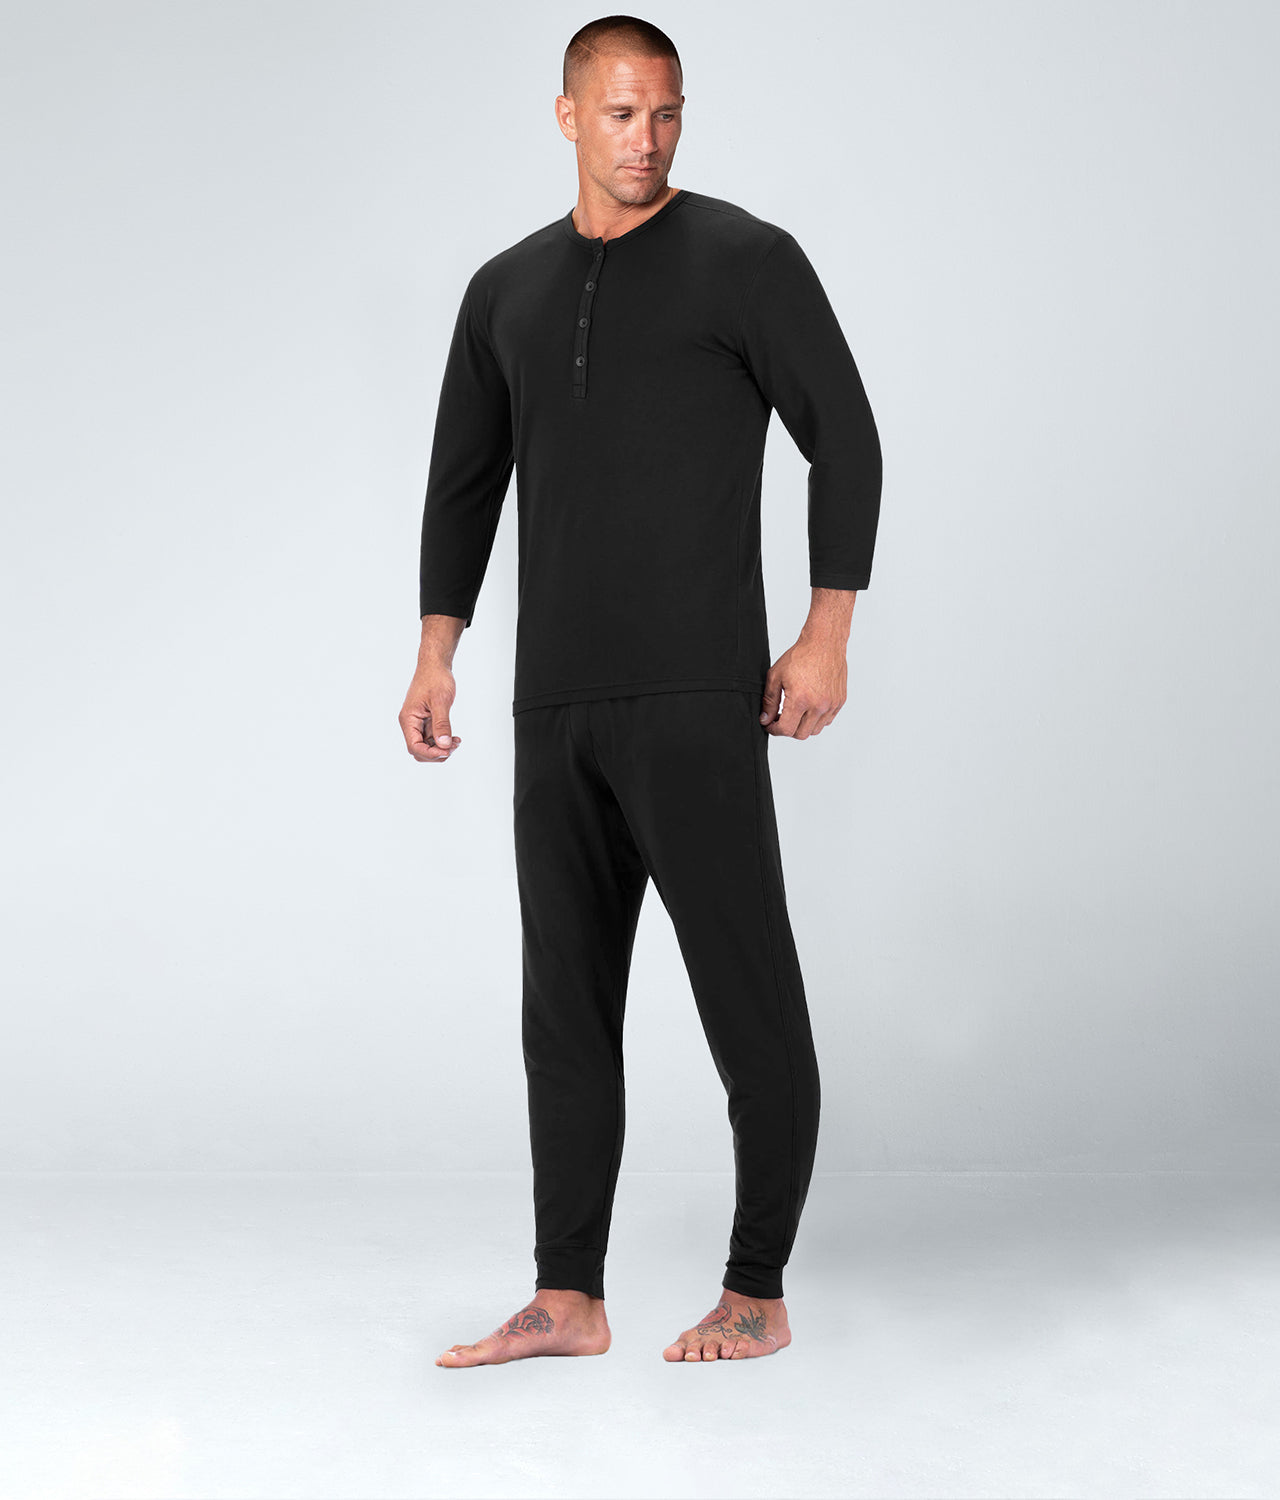 Born Tough Black Well-Rested Sleep Athlete Recovery Sleepwear for Men